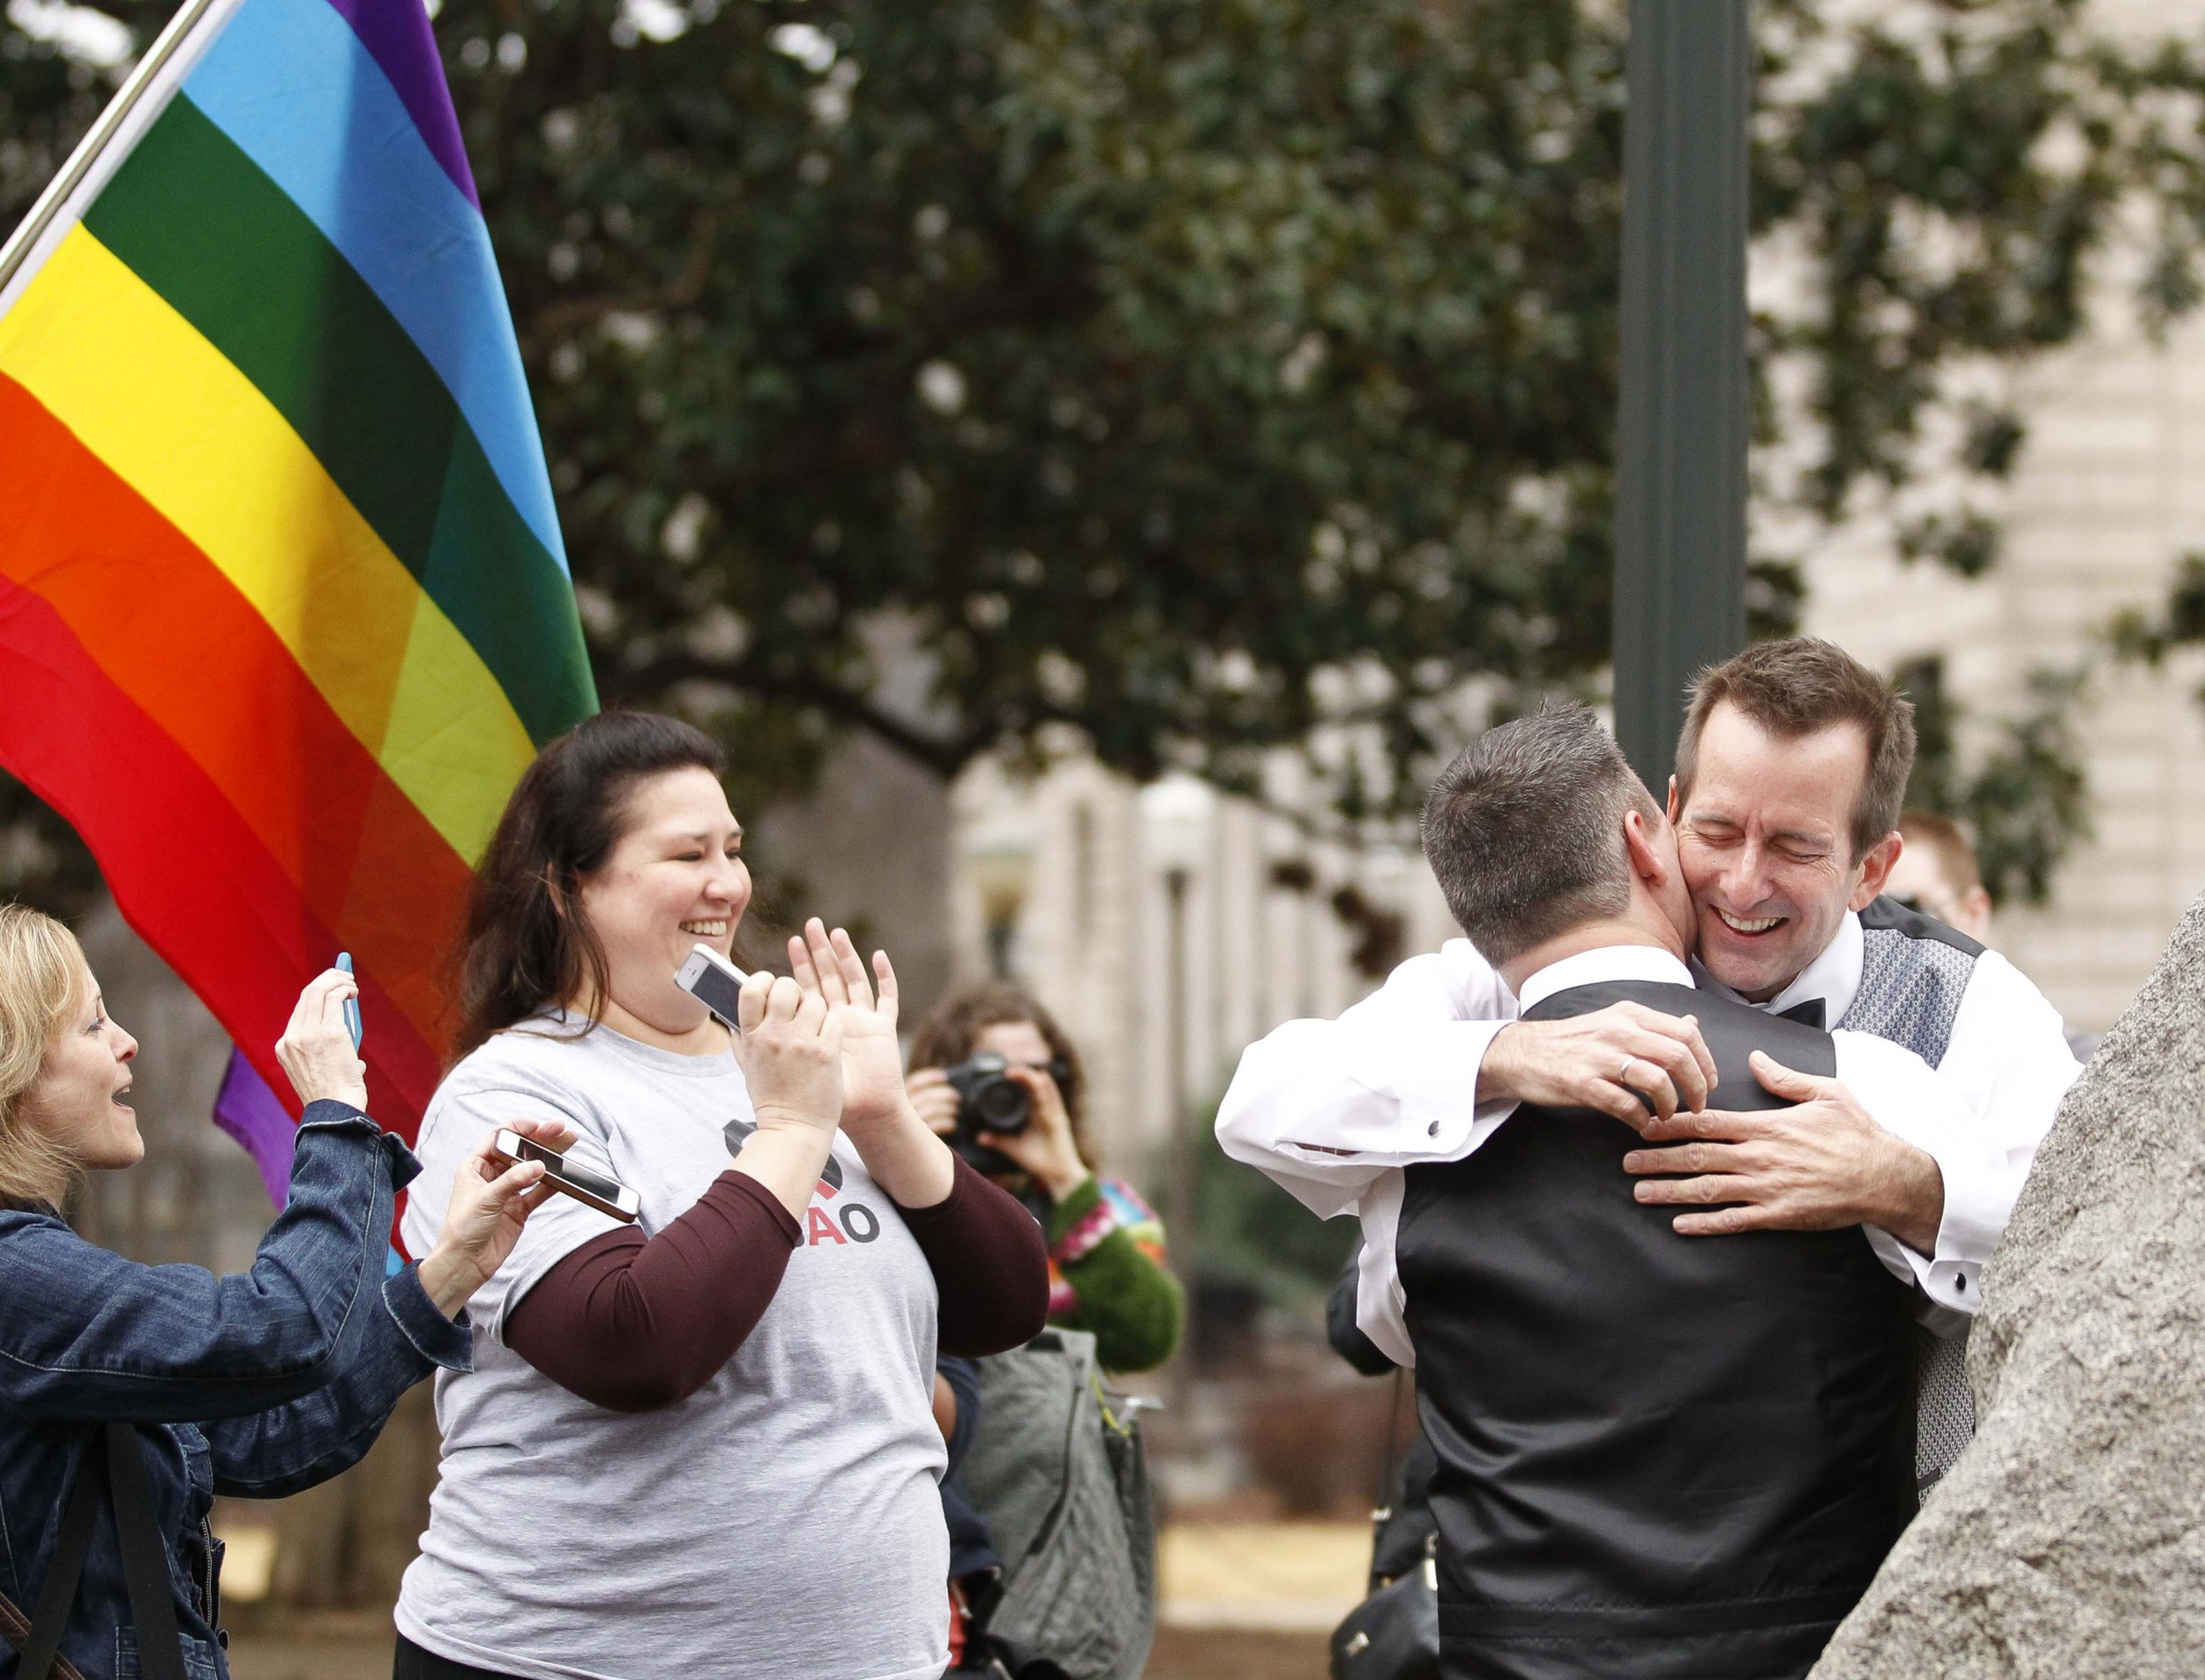 Supreme court gay marriage decision date in Melbourne